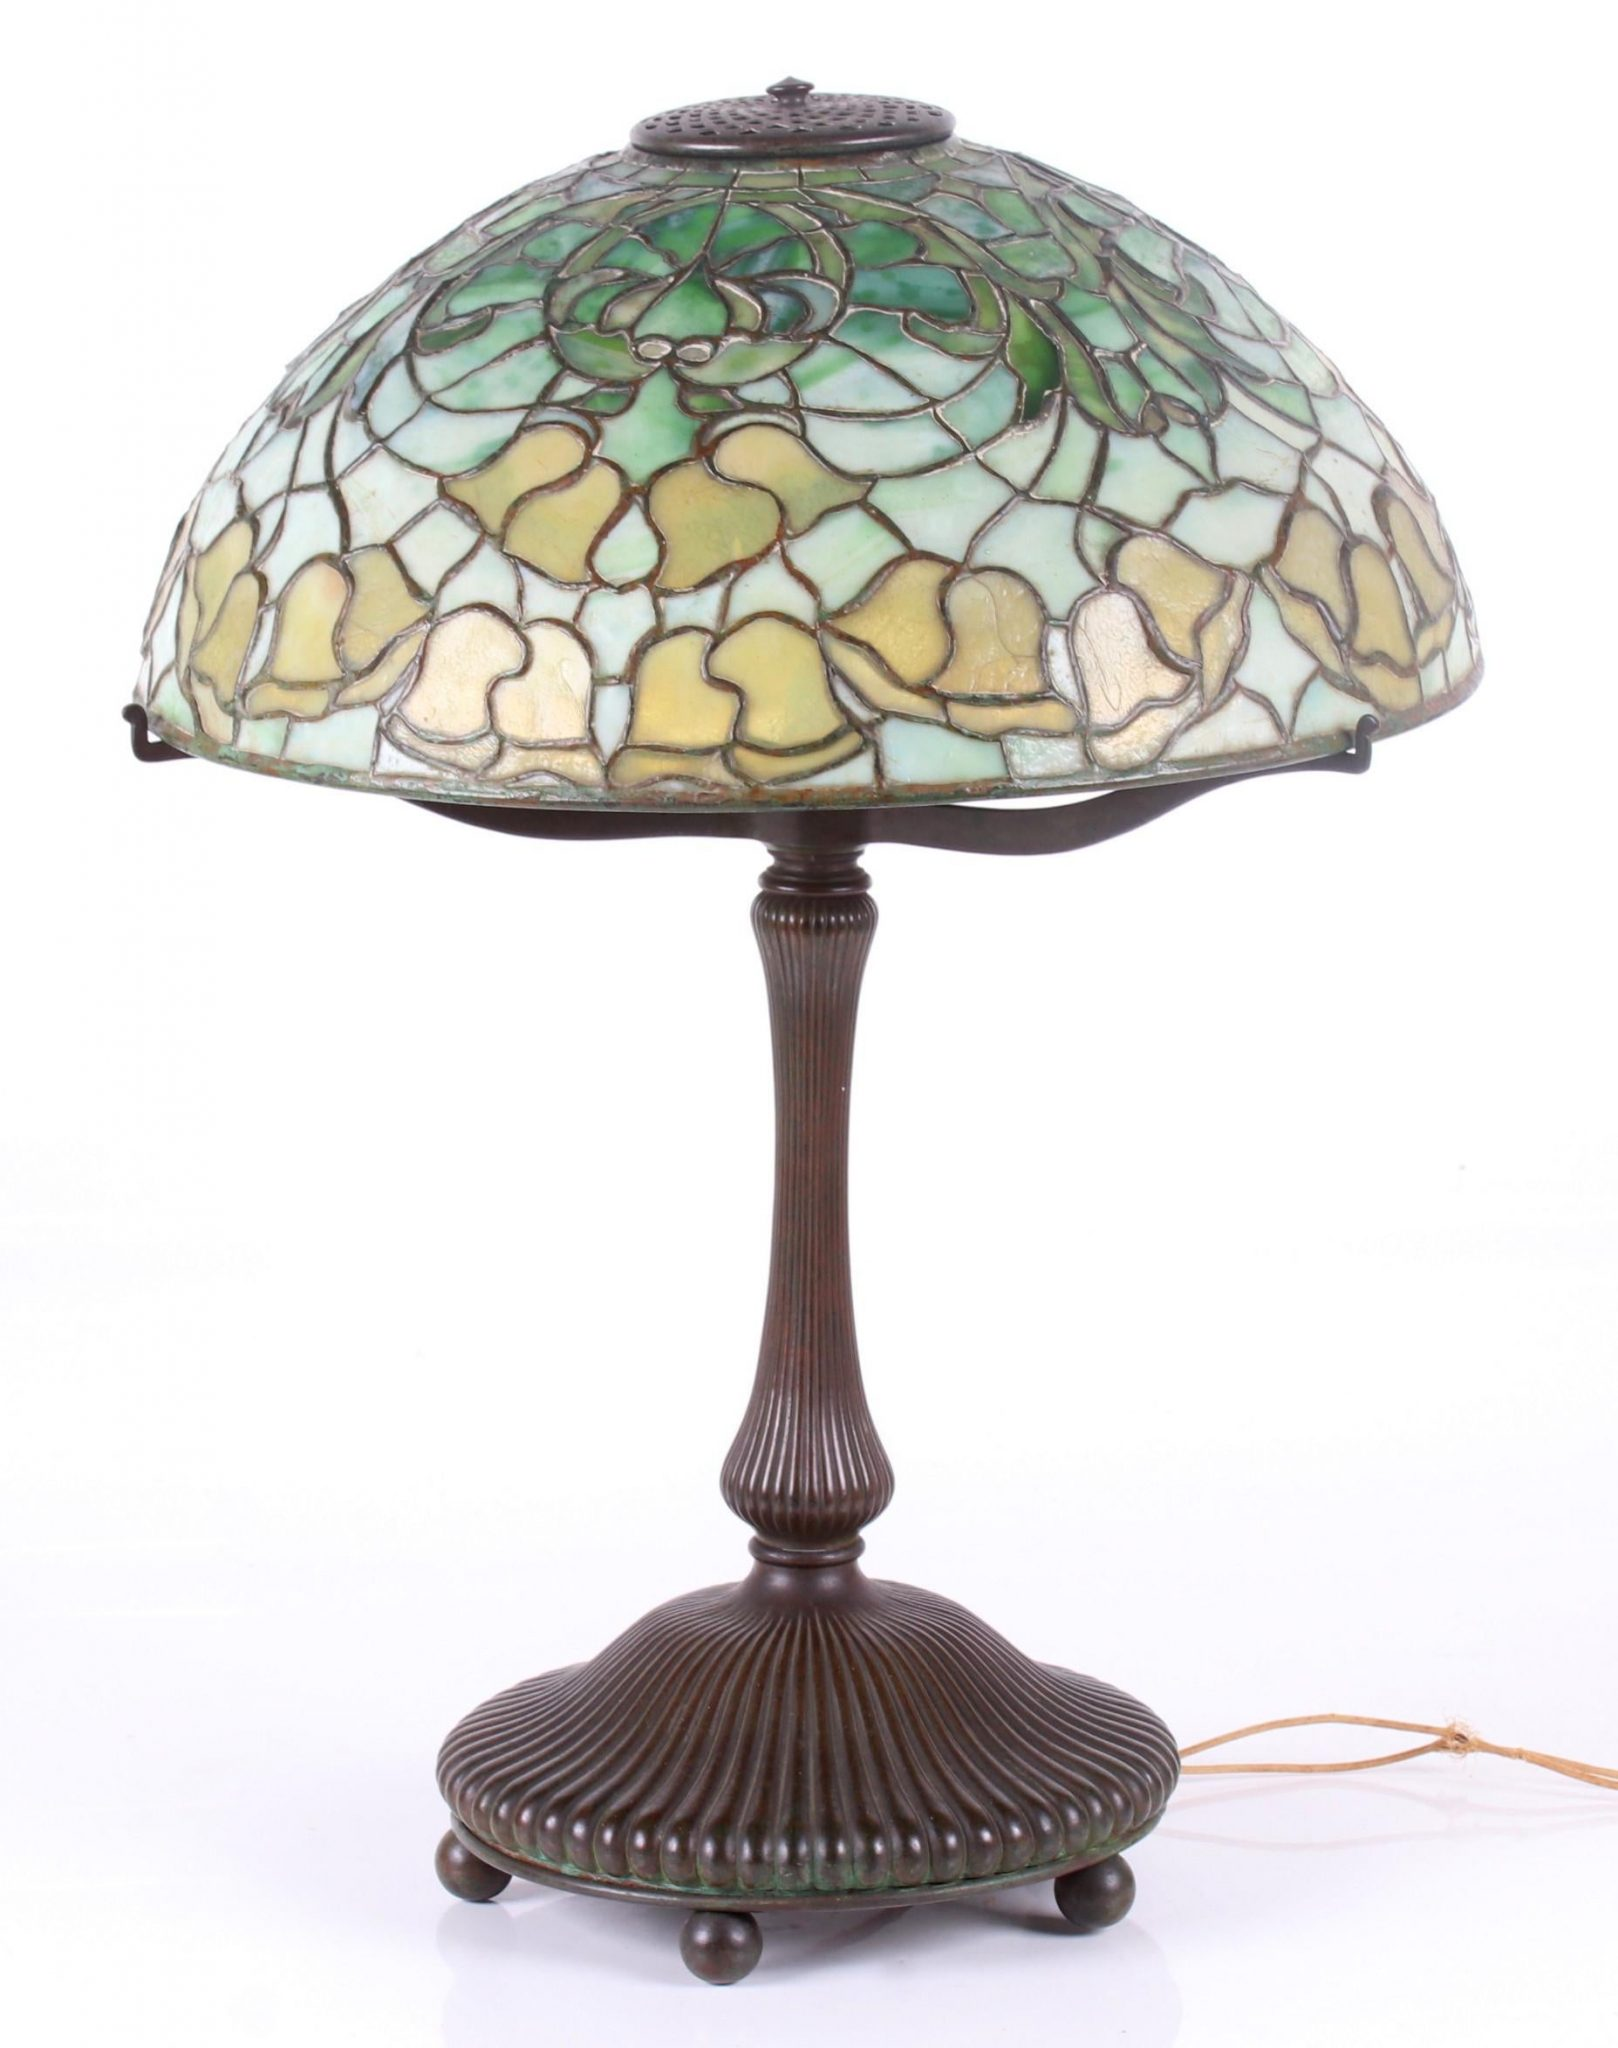 320022: Tiffany Studios Bellflower Table Lamp, Realized $7,000